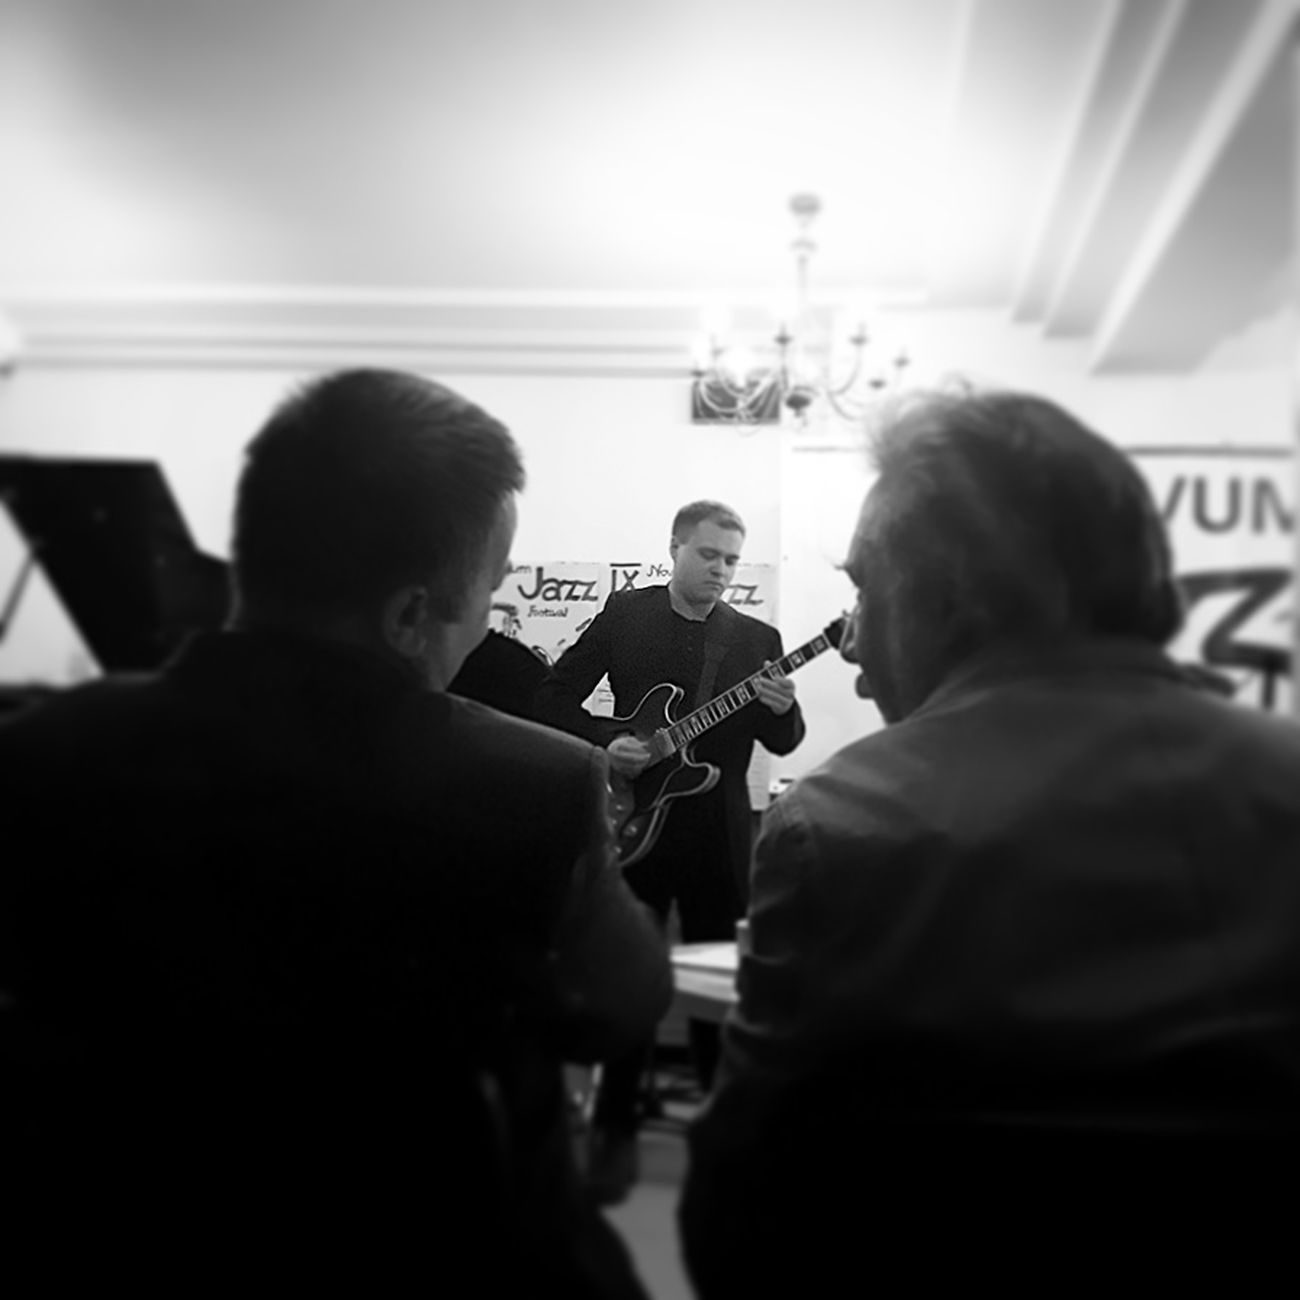 Musician Performance Blackandwhite Jazz Night Good Times Poland Music Like Competition Day Niceevening Lomzapoland Novumjazzfestival Jazz Festival Blackandwhite Photography Nice Atmosphere Lomza Łomża Keep Smiling Music Festival Beautiful Day Gitara Guitar Player Jazz Music